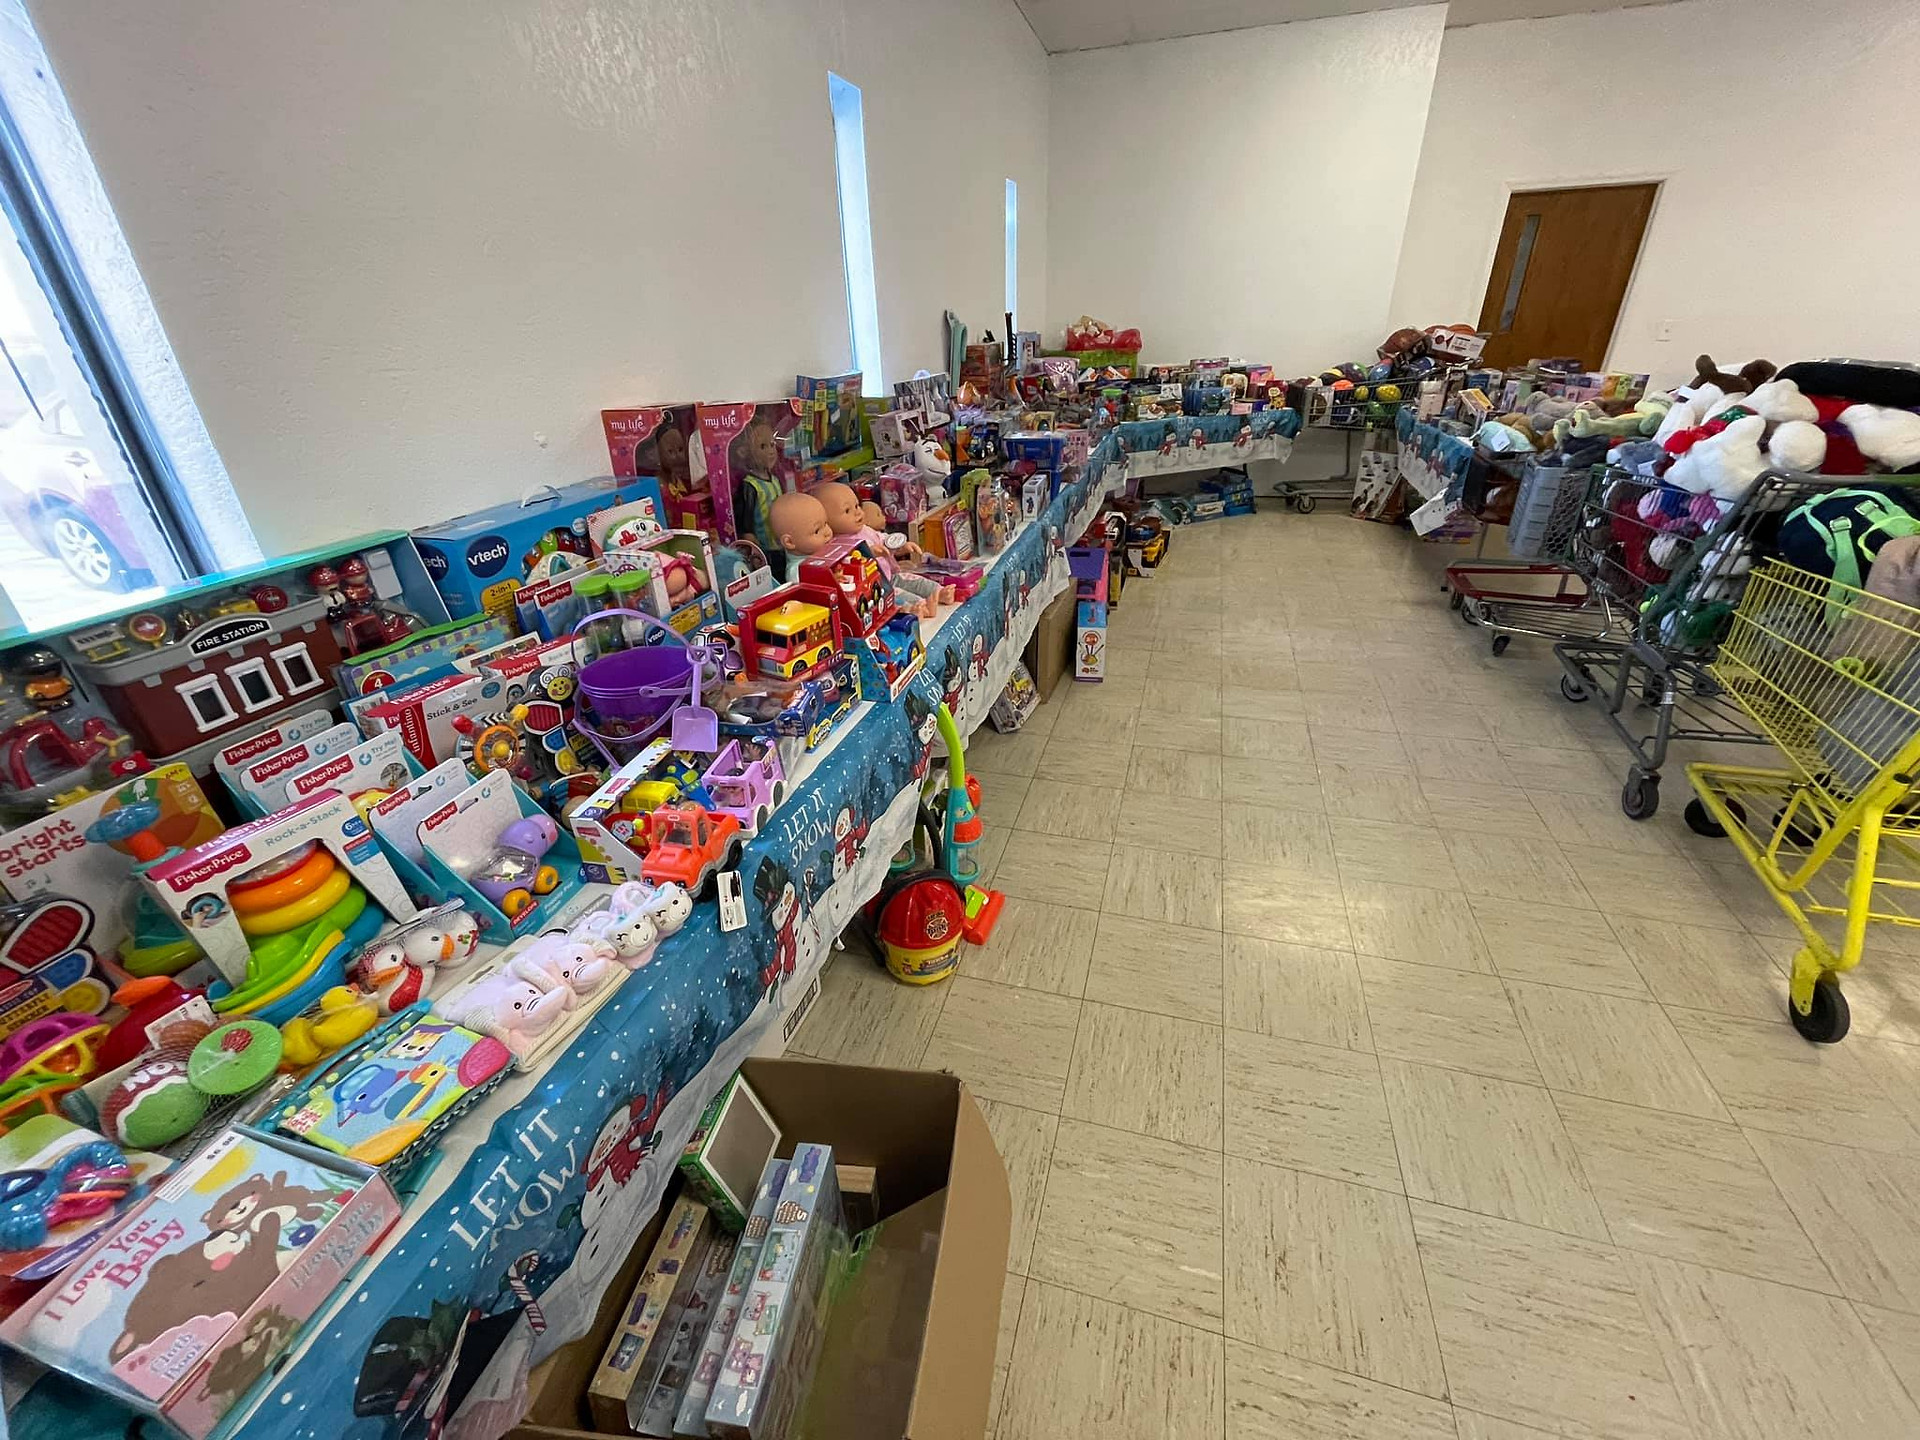 In a season of sharing, Chapel Hill made a real difference at the Skyline Christmas Store.